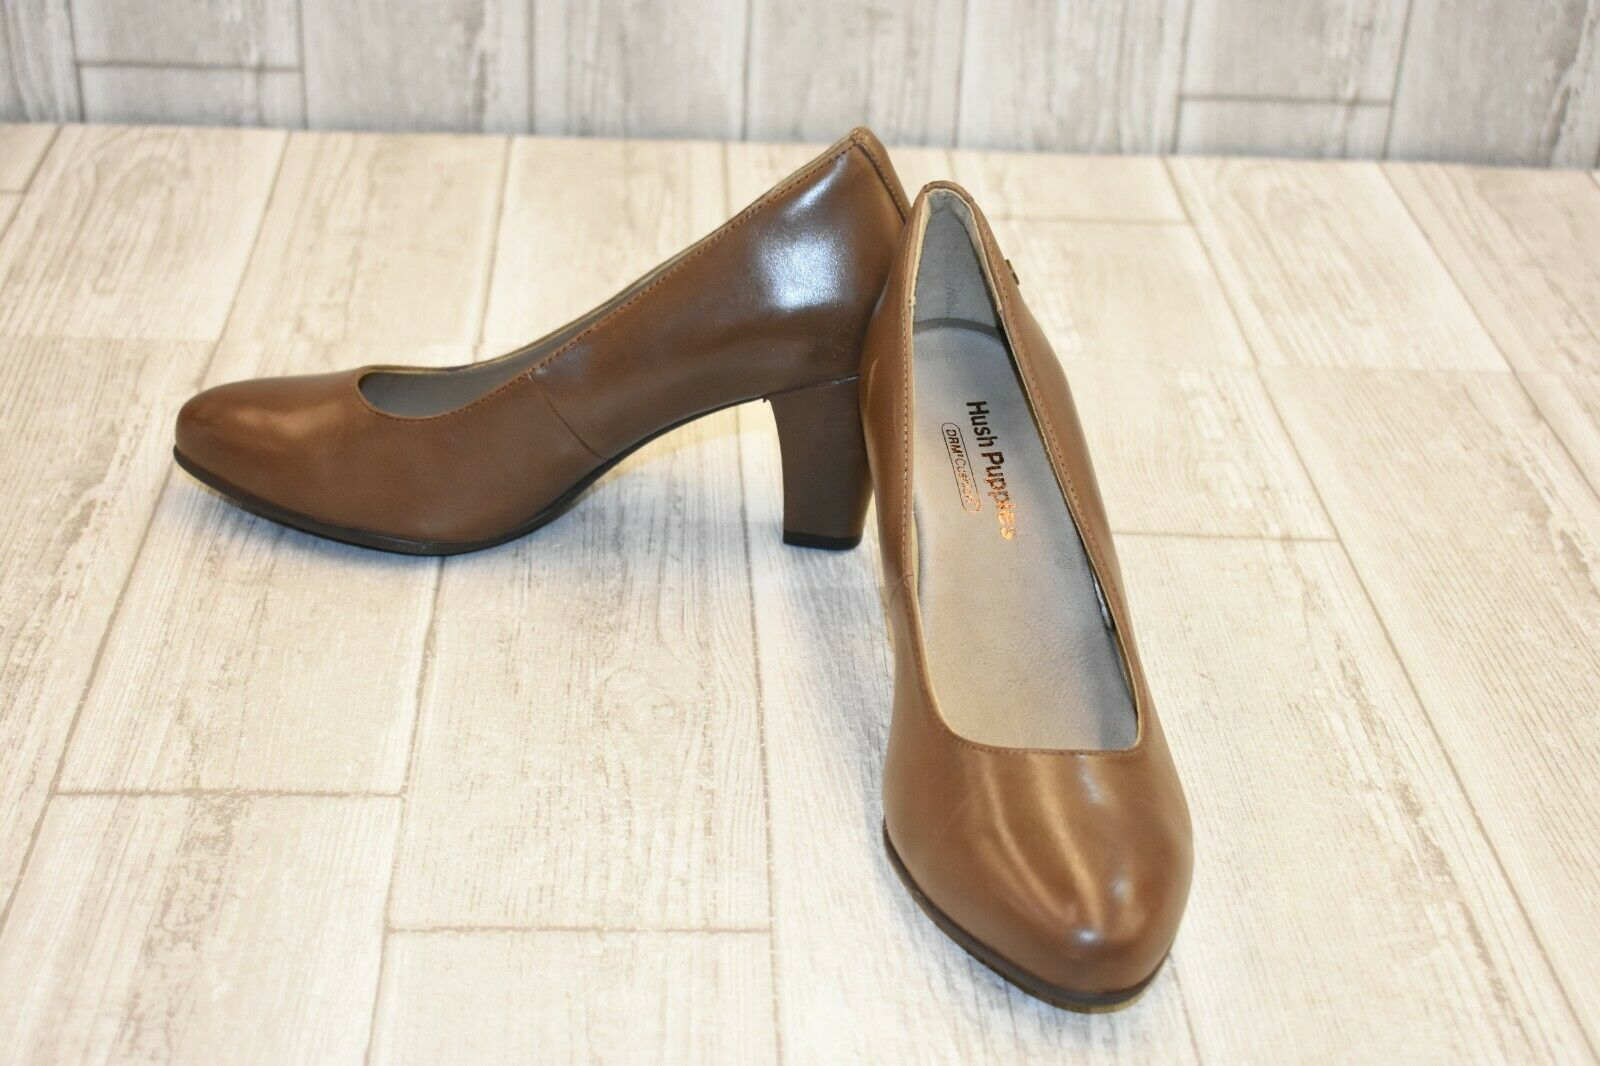 Hush Puppies Minam Meaghan Pump - Women's Size 8.5M - Brown